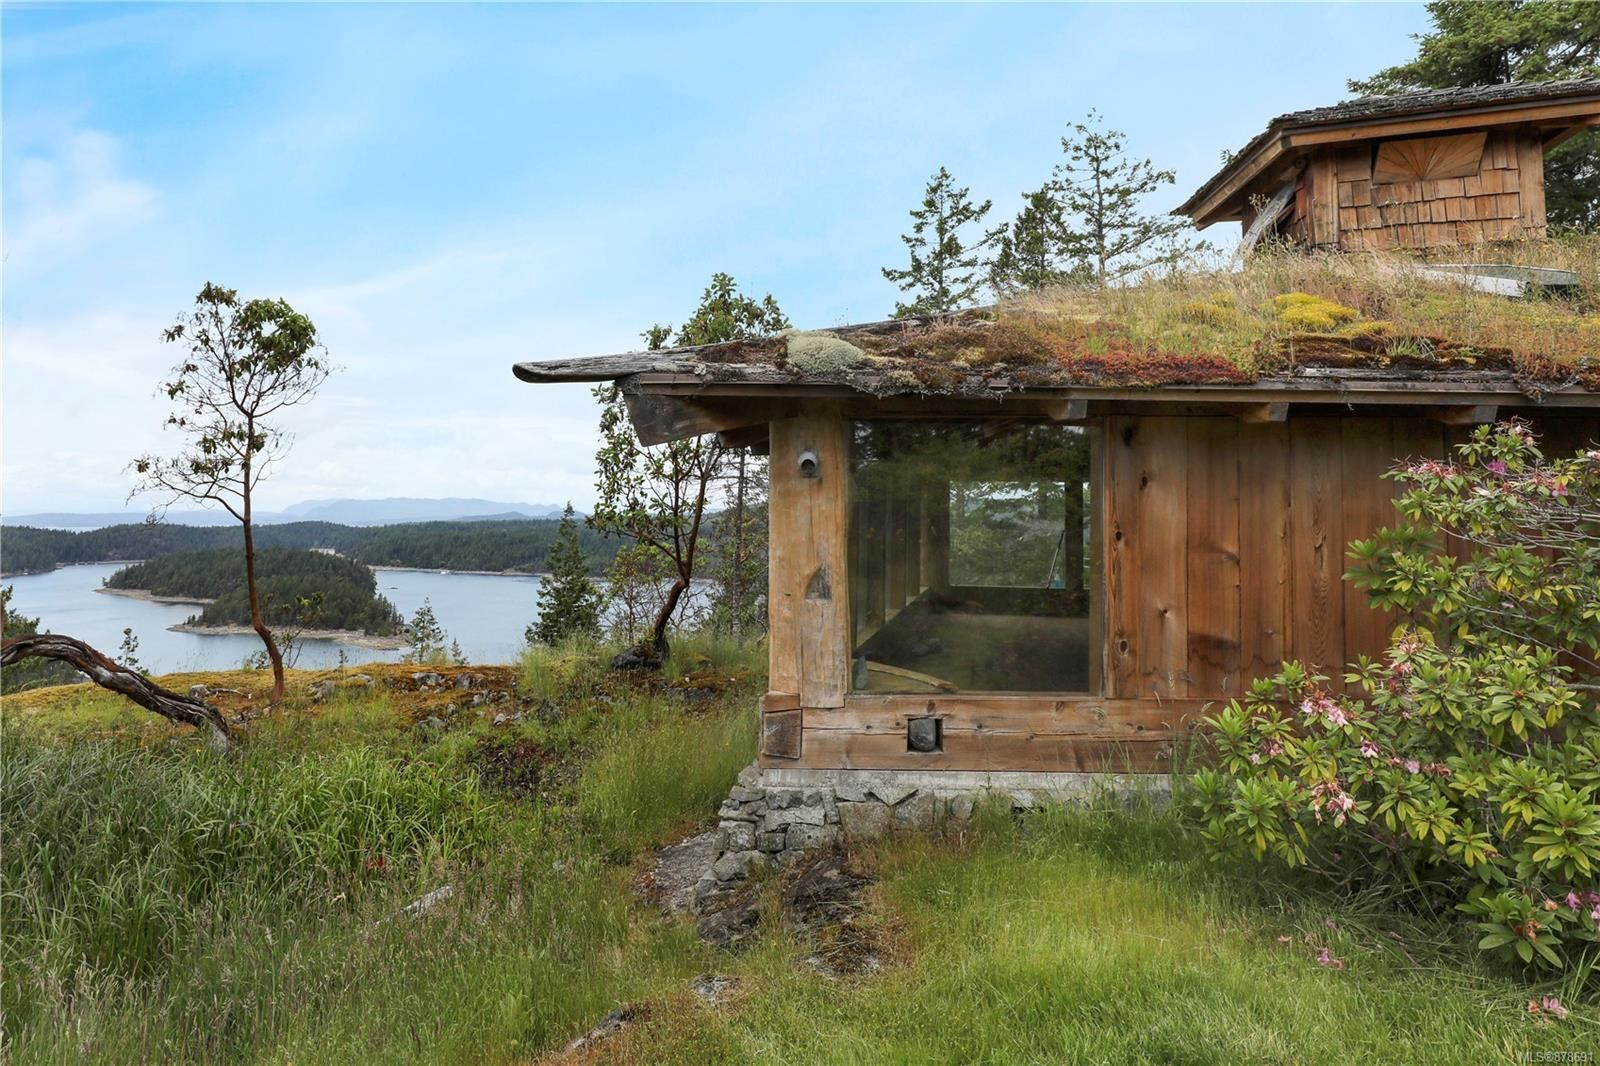 Photo 26: Photos: 979 Thunder Rd in : Isl Cortes Island House for sale (Islands)  : MLS®# 878691